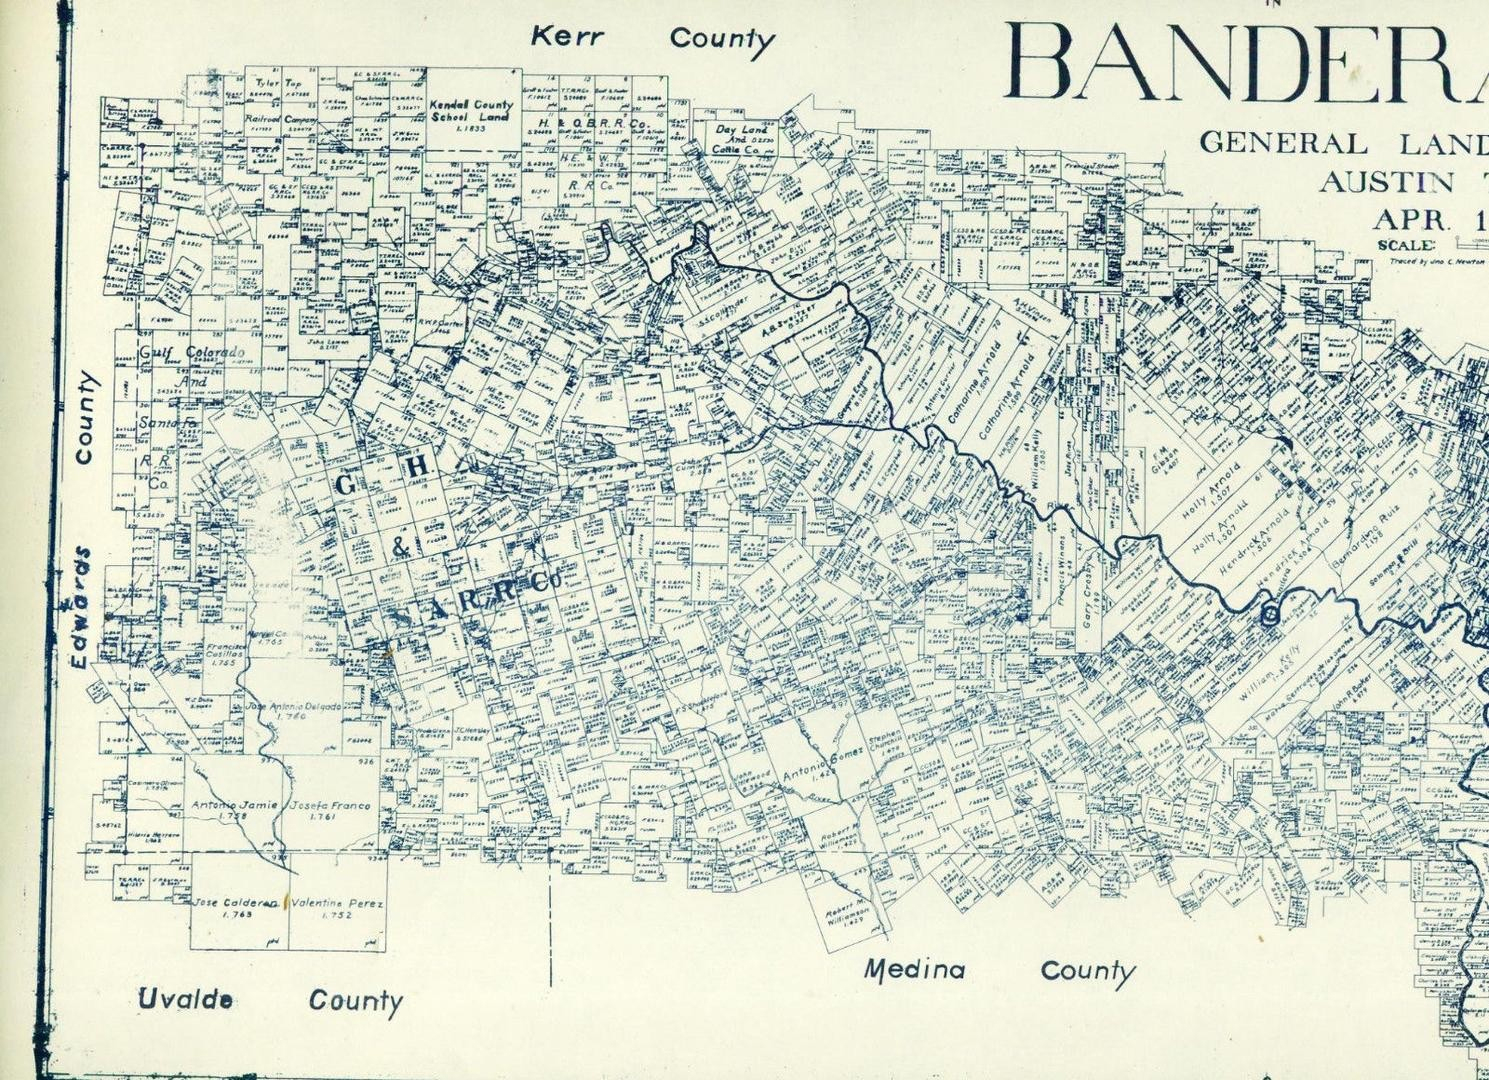 Old Bandera County Texas General Land Office Owner Map Medina Pipe - Pipe Creek Texas Map